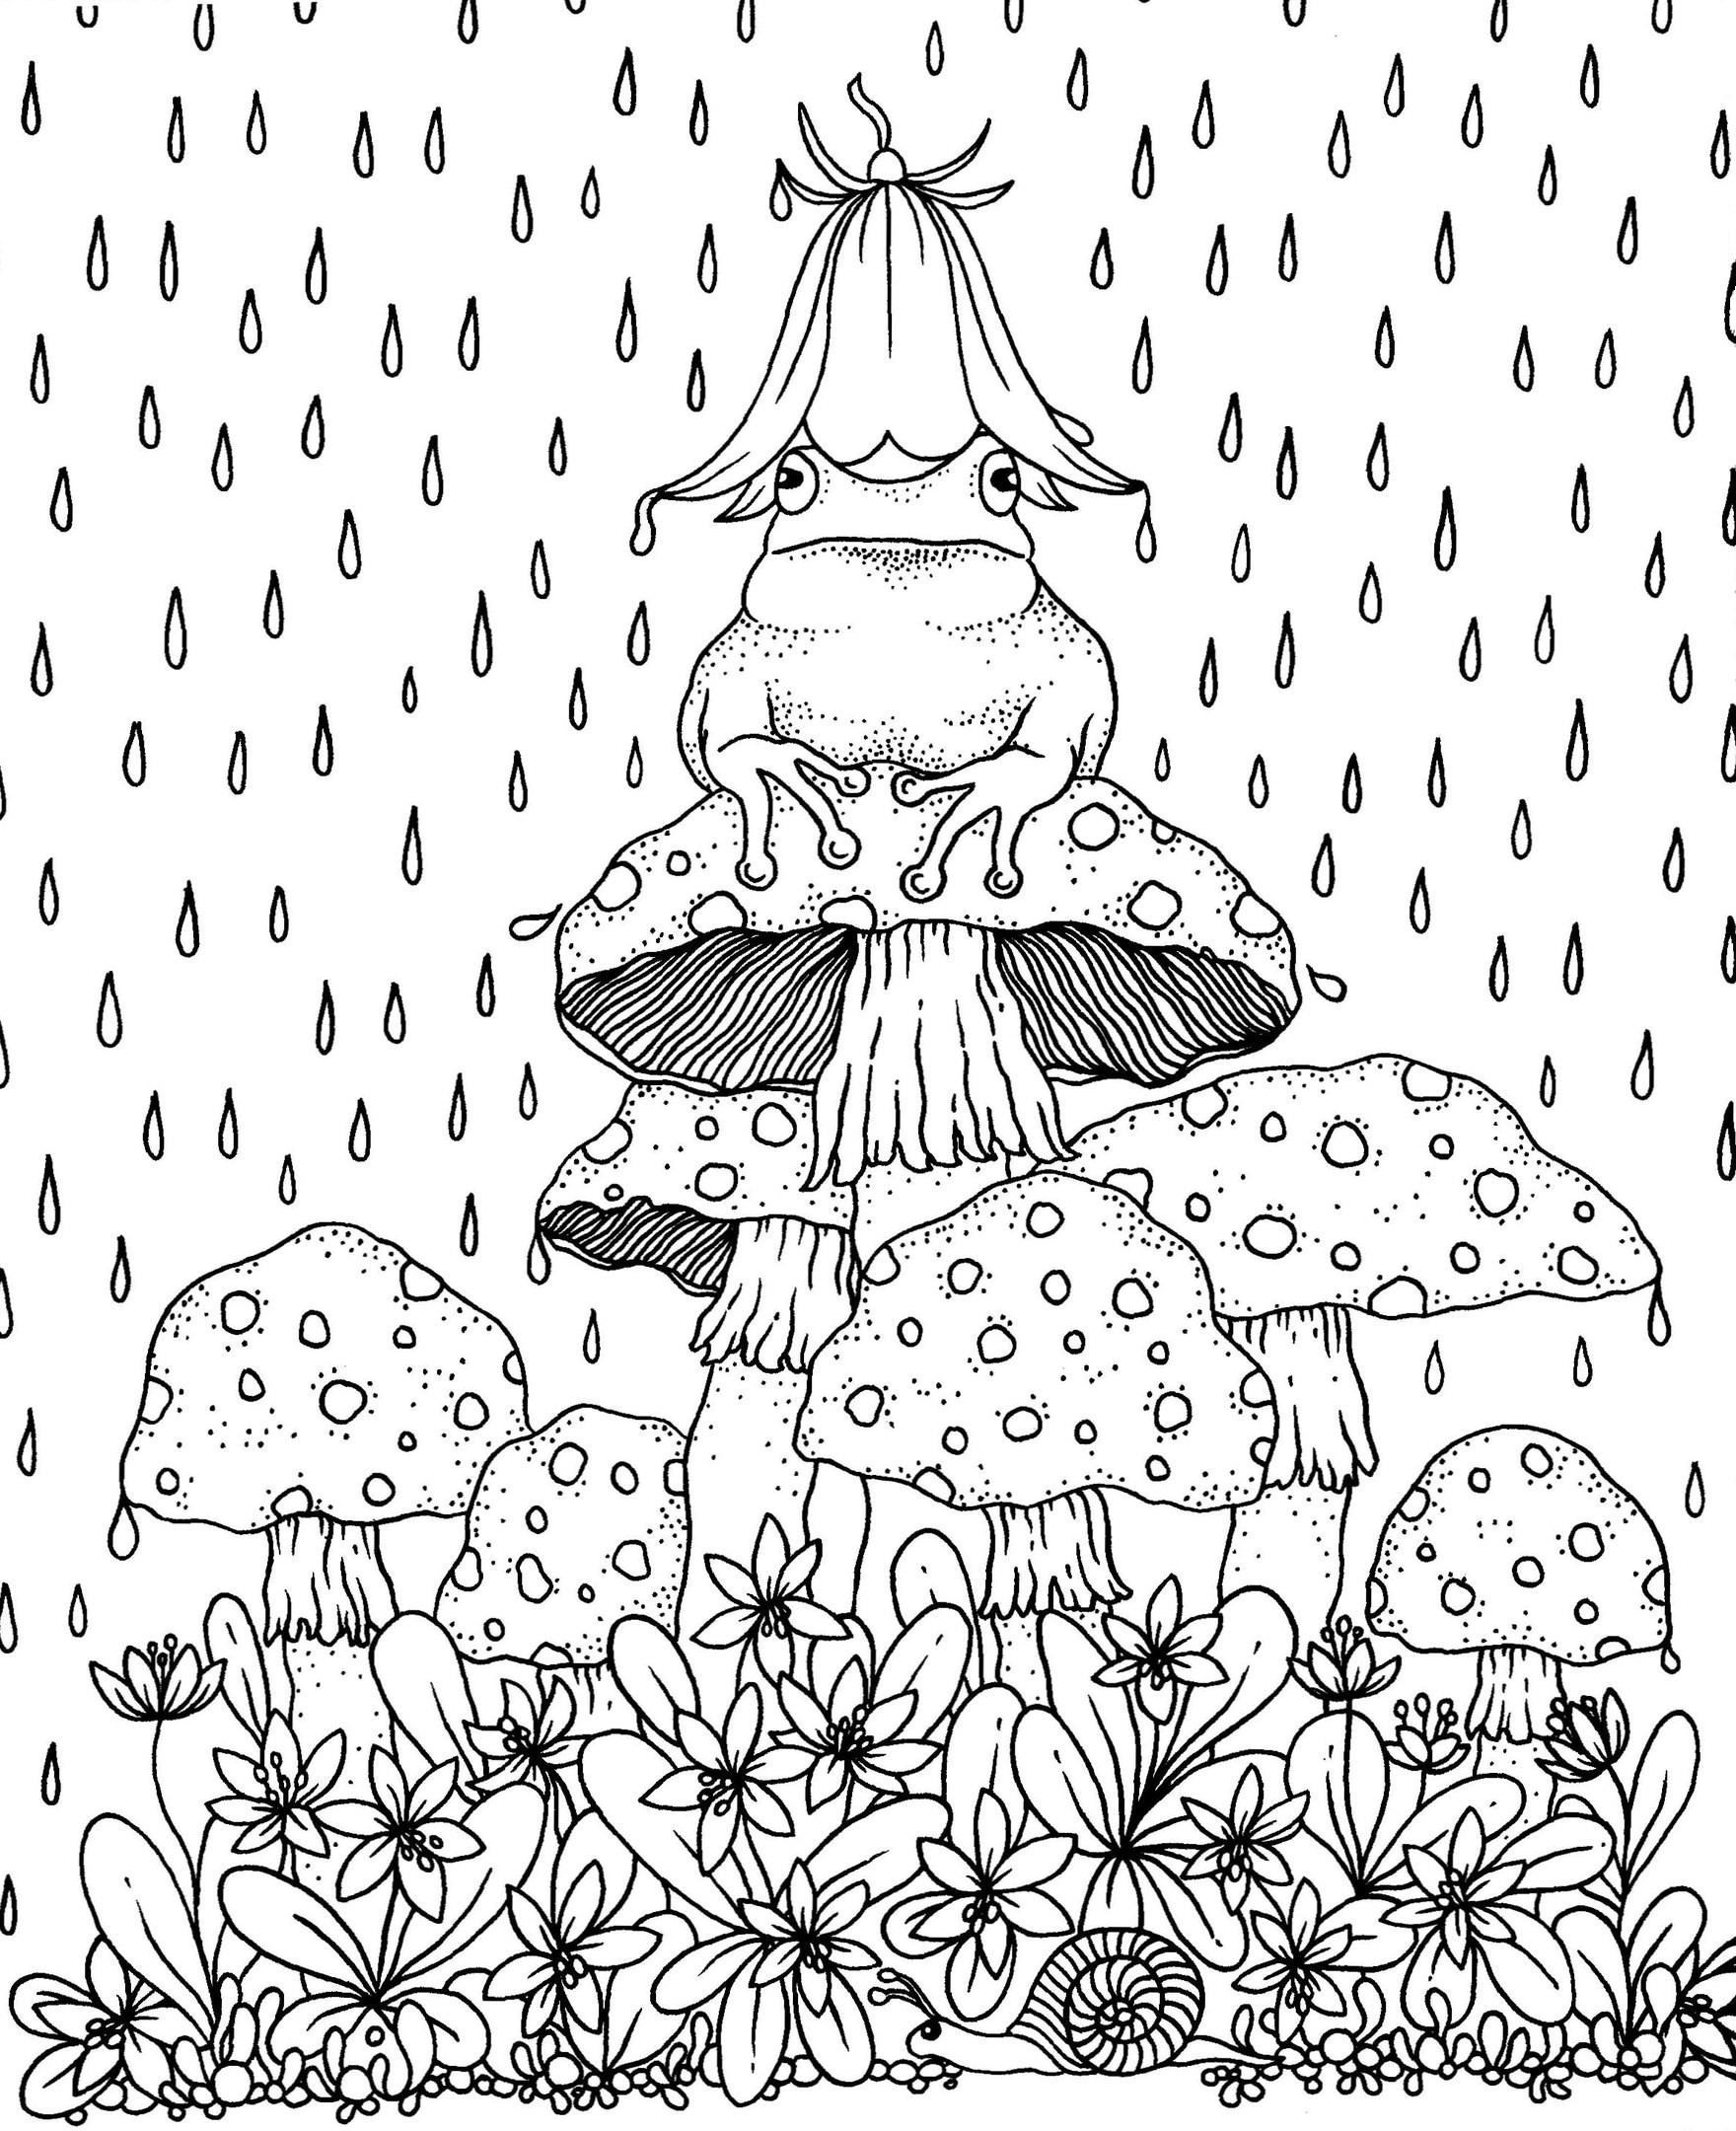 The frog on the mushroom in the rain